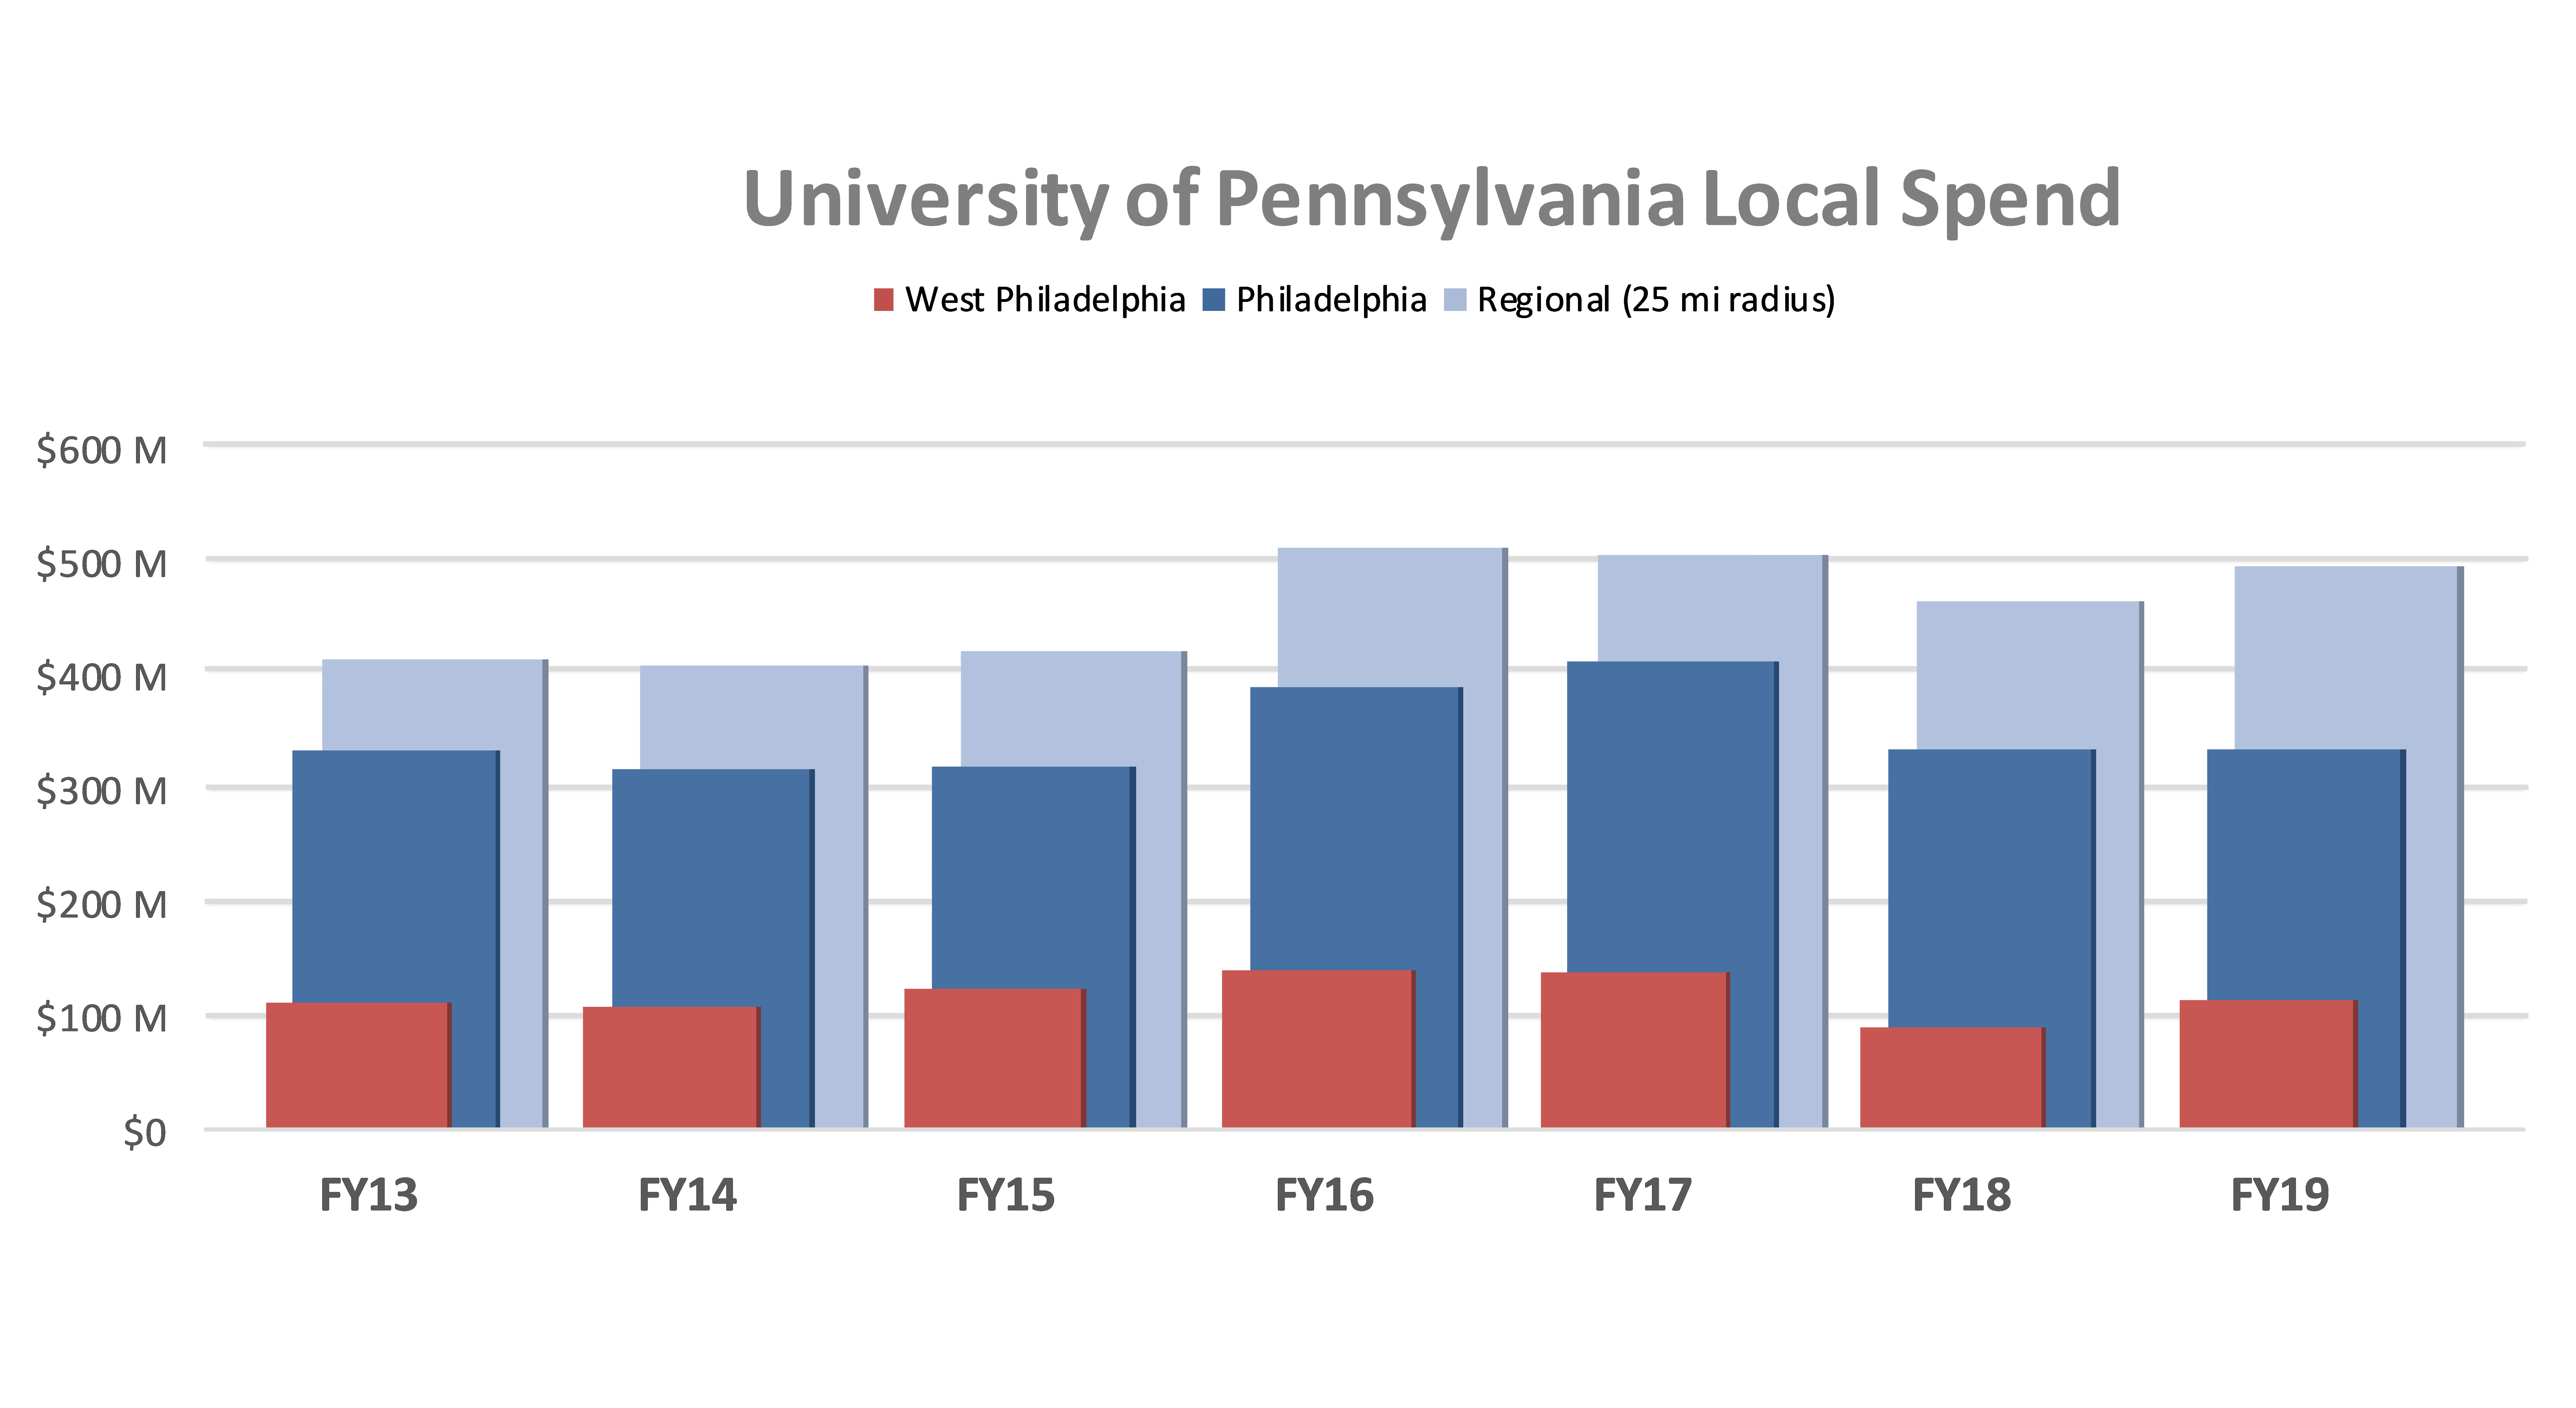 Graph of UPenn Local Spend over the fiscal years